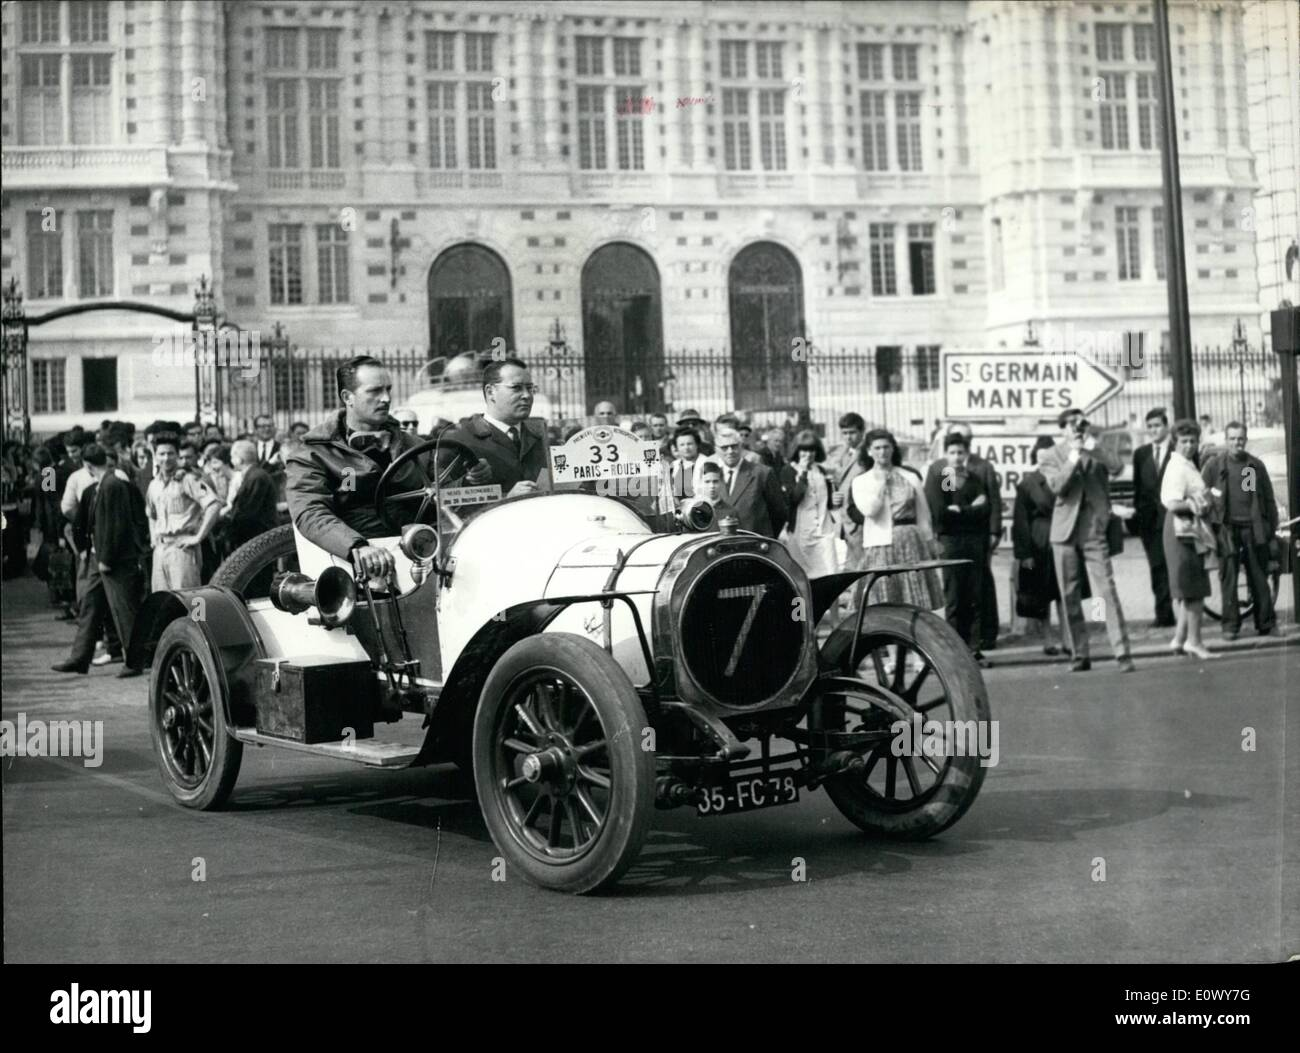 Old Cars Stock Photos & Old Cars Stock Images - Alamy